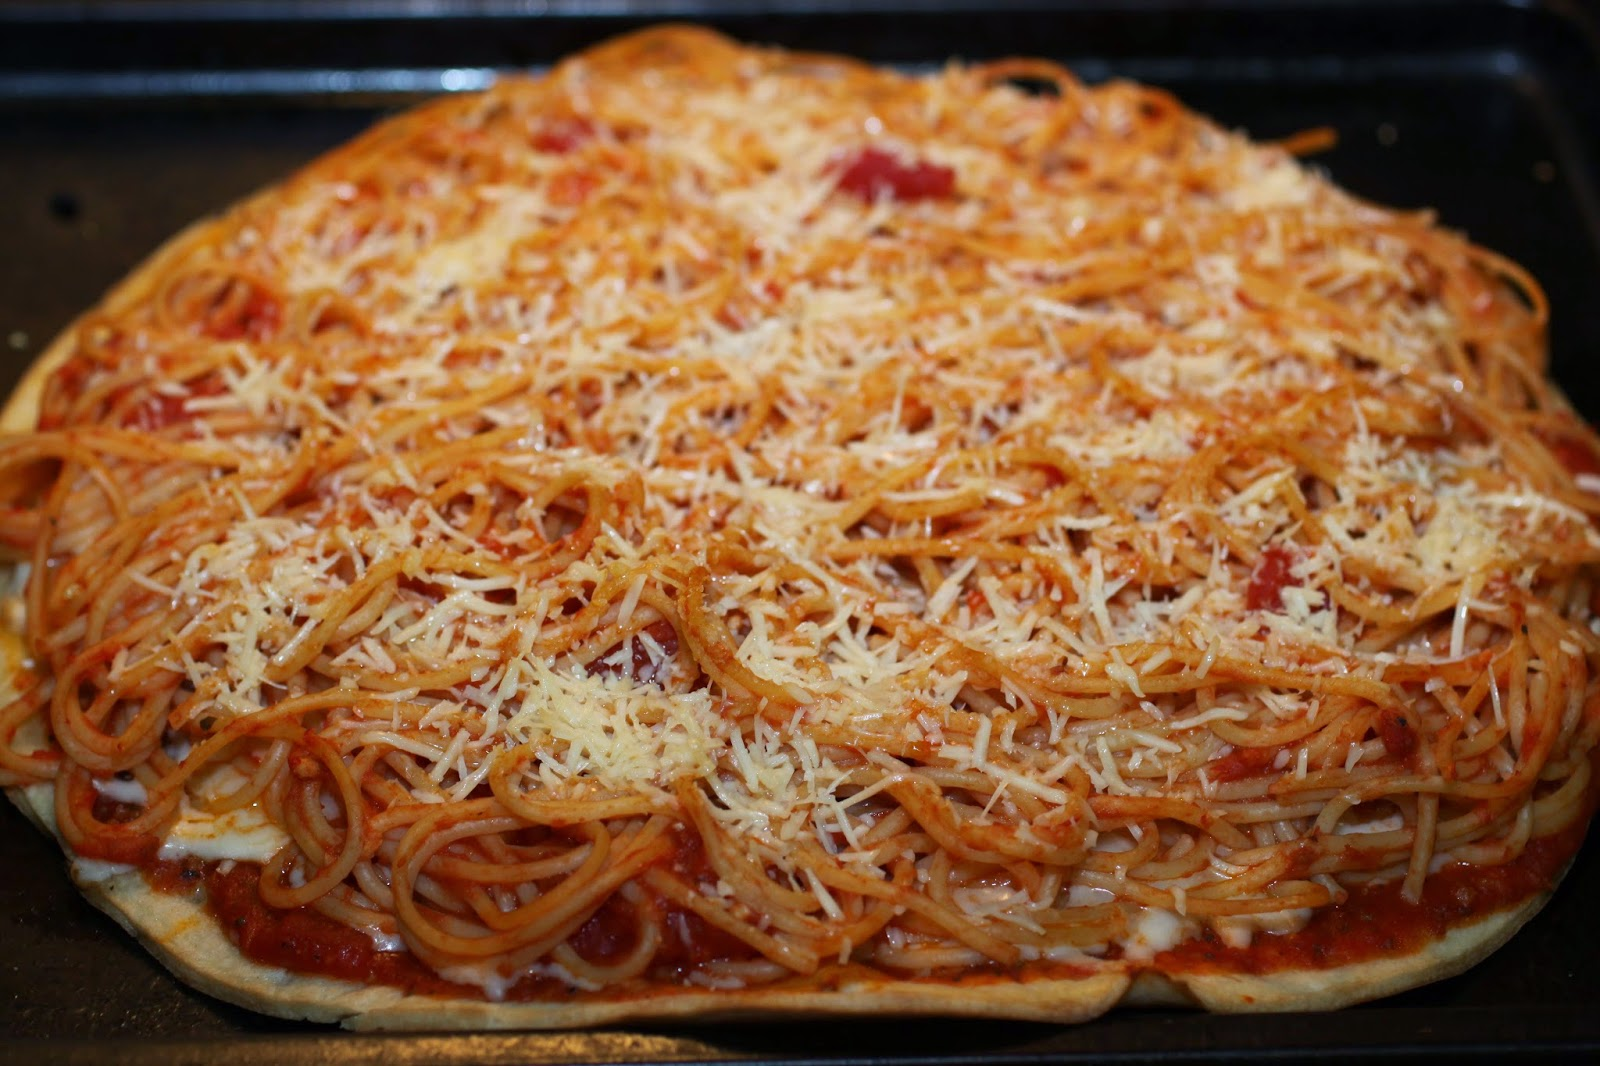 ... : It's a Spaghetti Pizza Pie with Garlic Bread Crust and a Giveaway